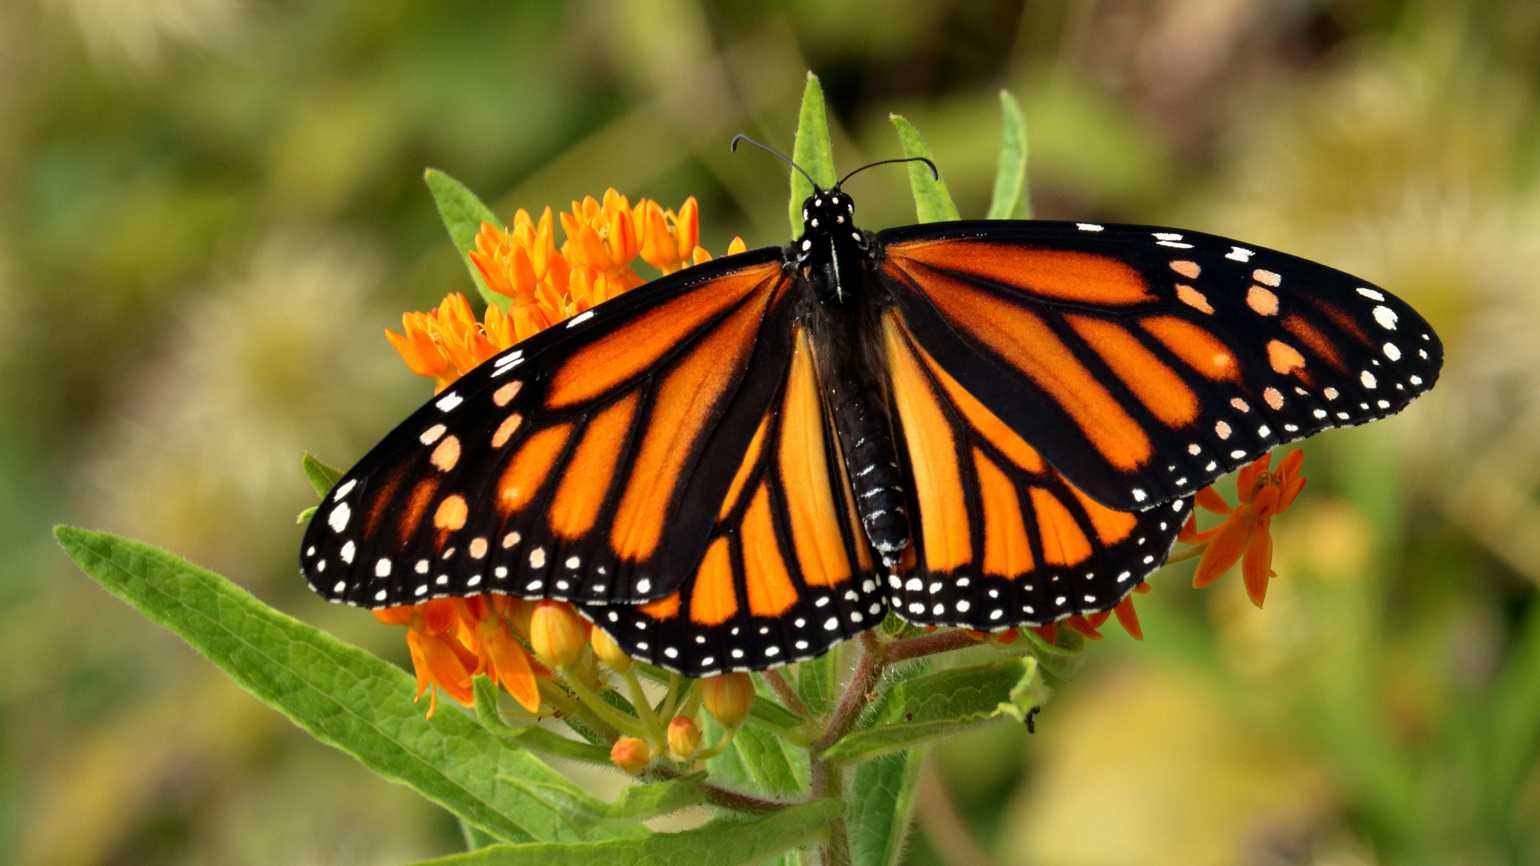 A monarch butterfly on a flower.